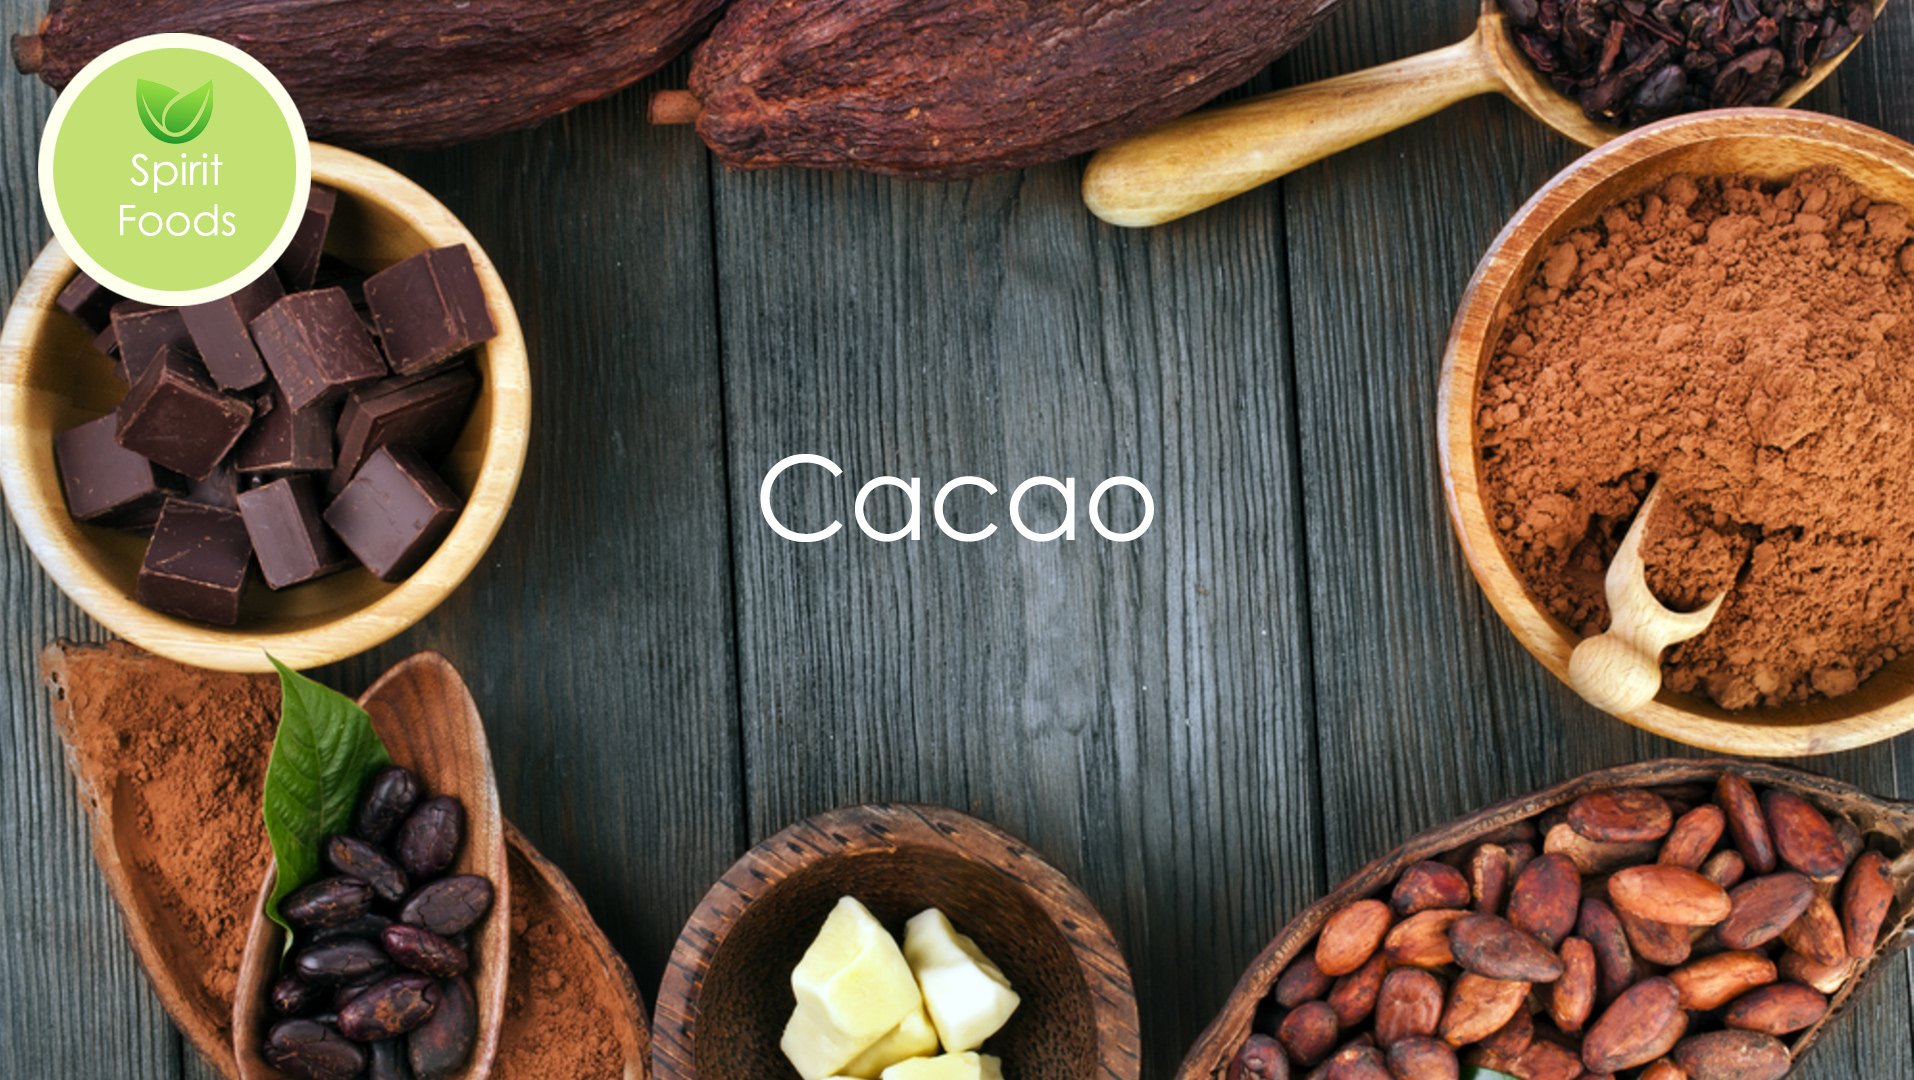 Spirit Food – Cacao